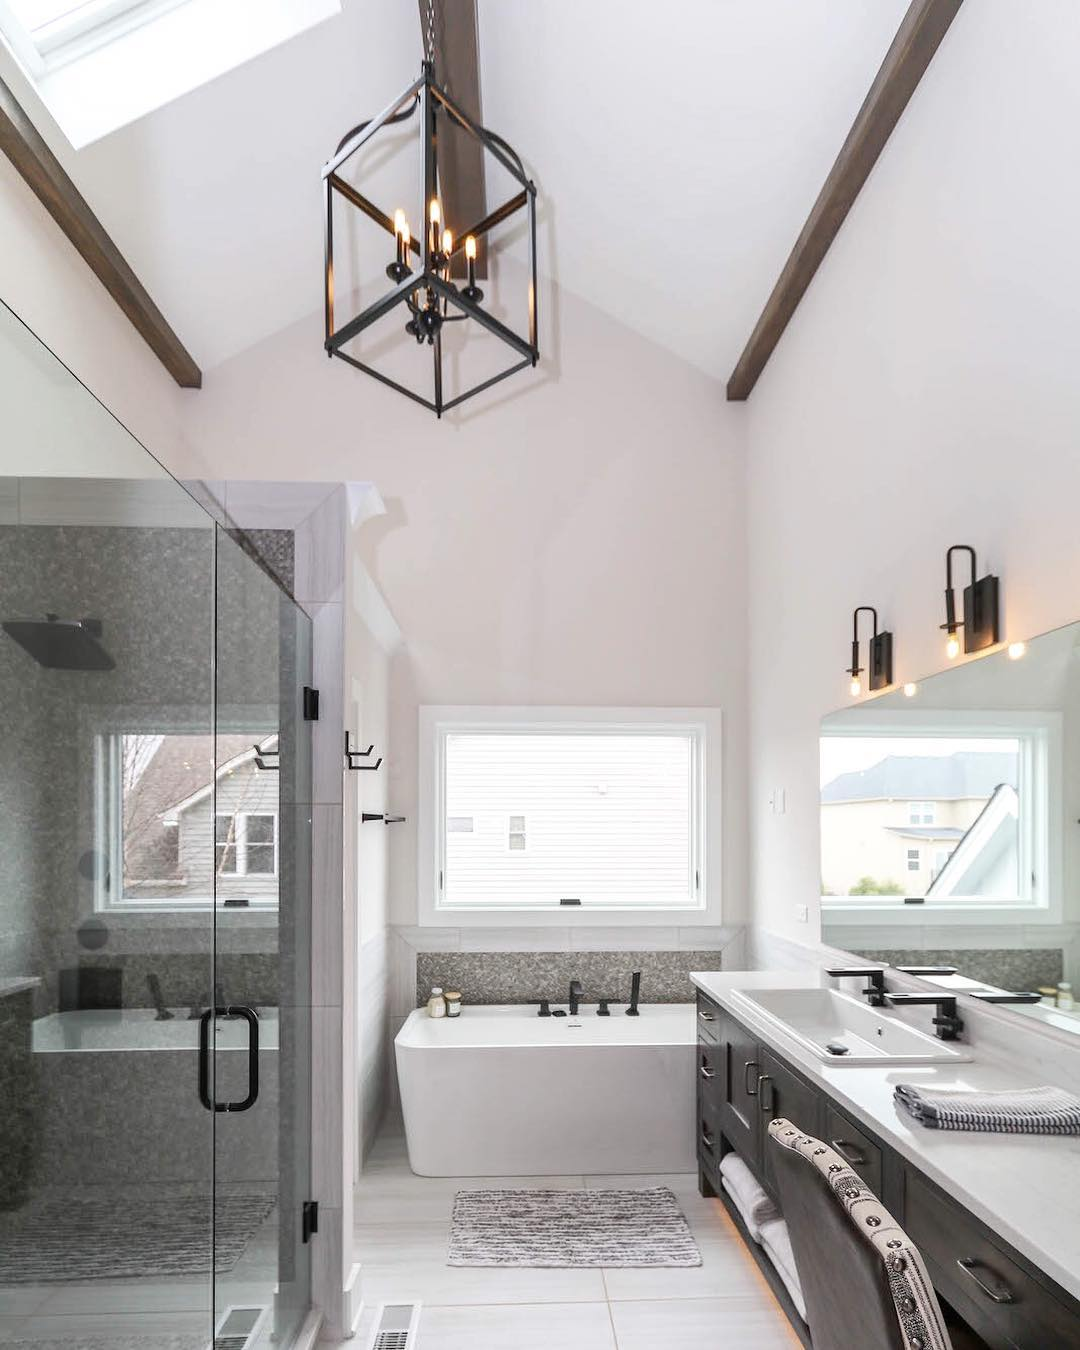 modern bathroom with glass shower and awning window over freestanding tub